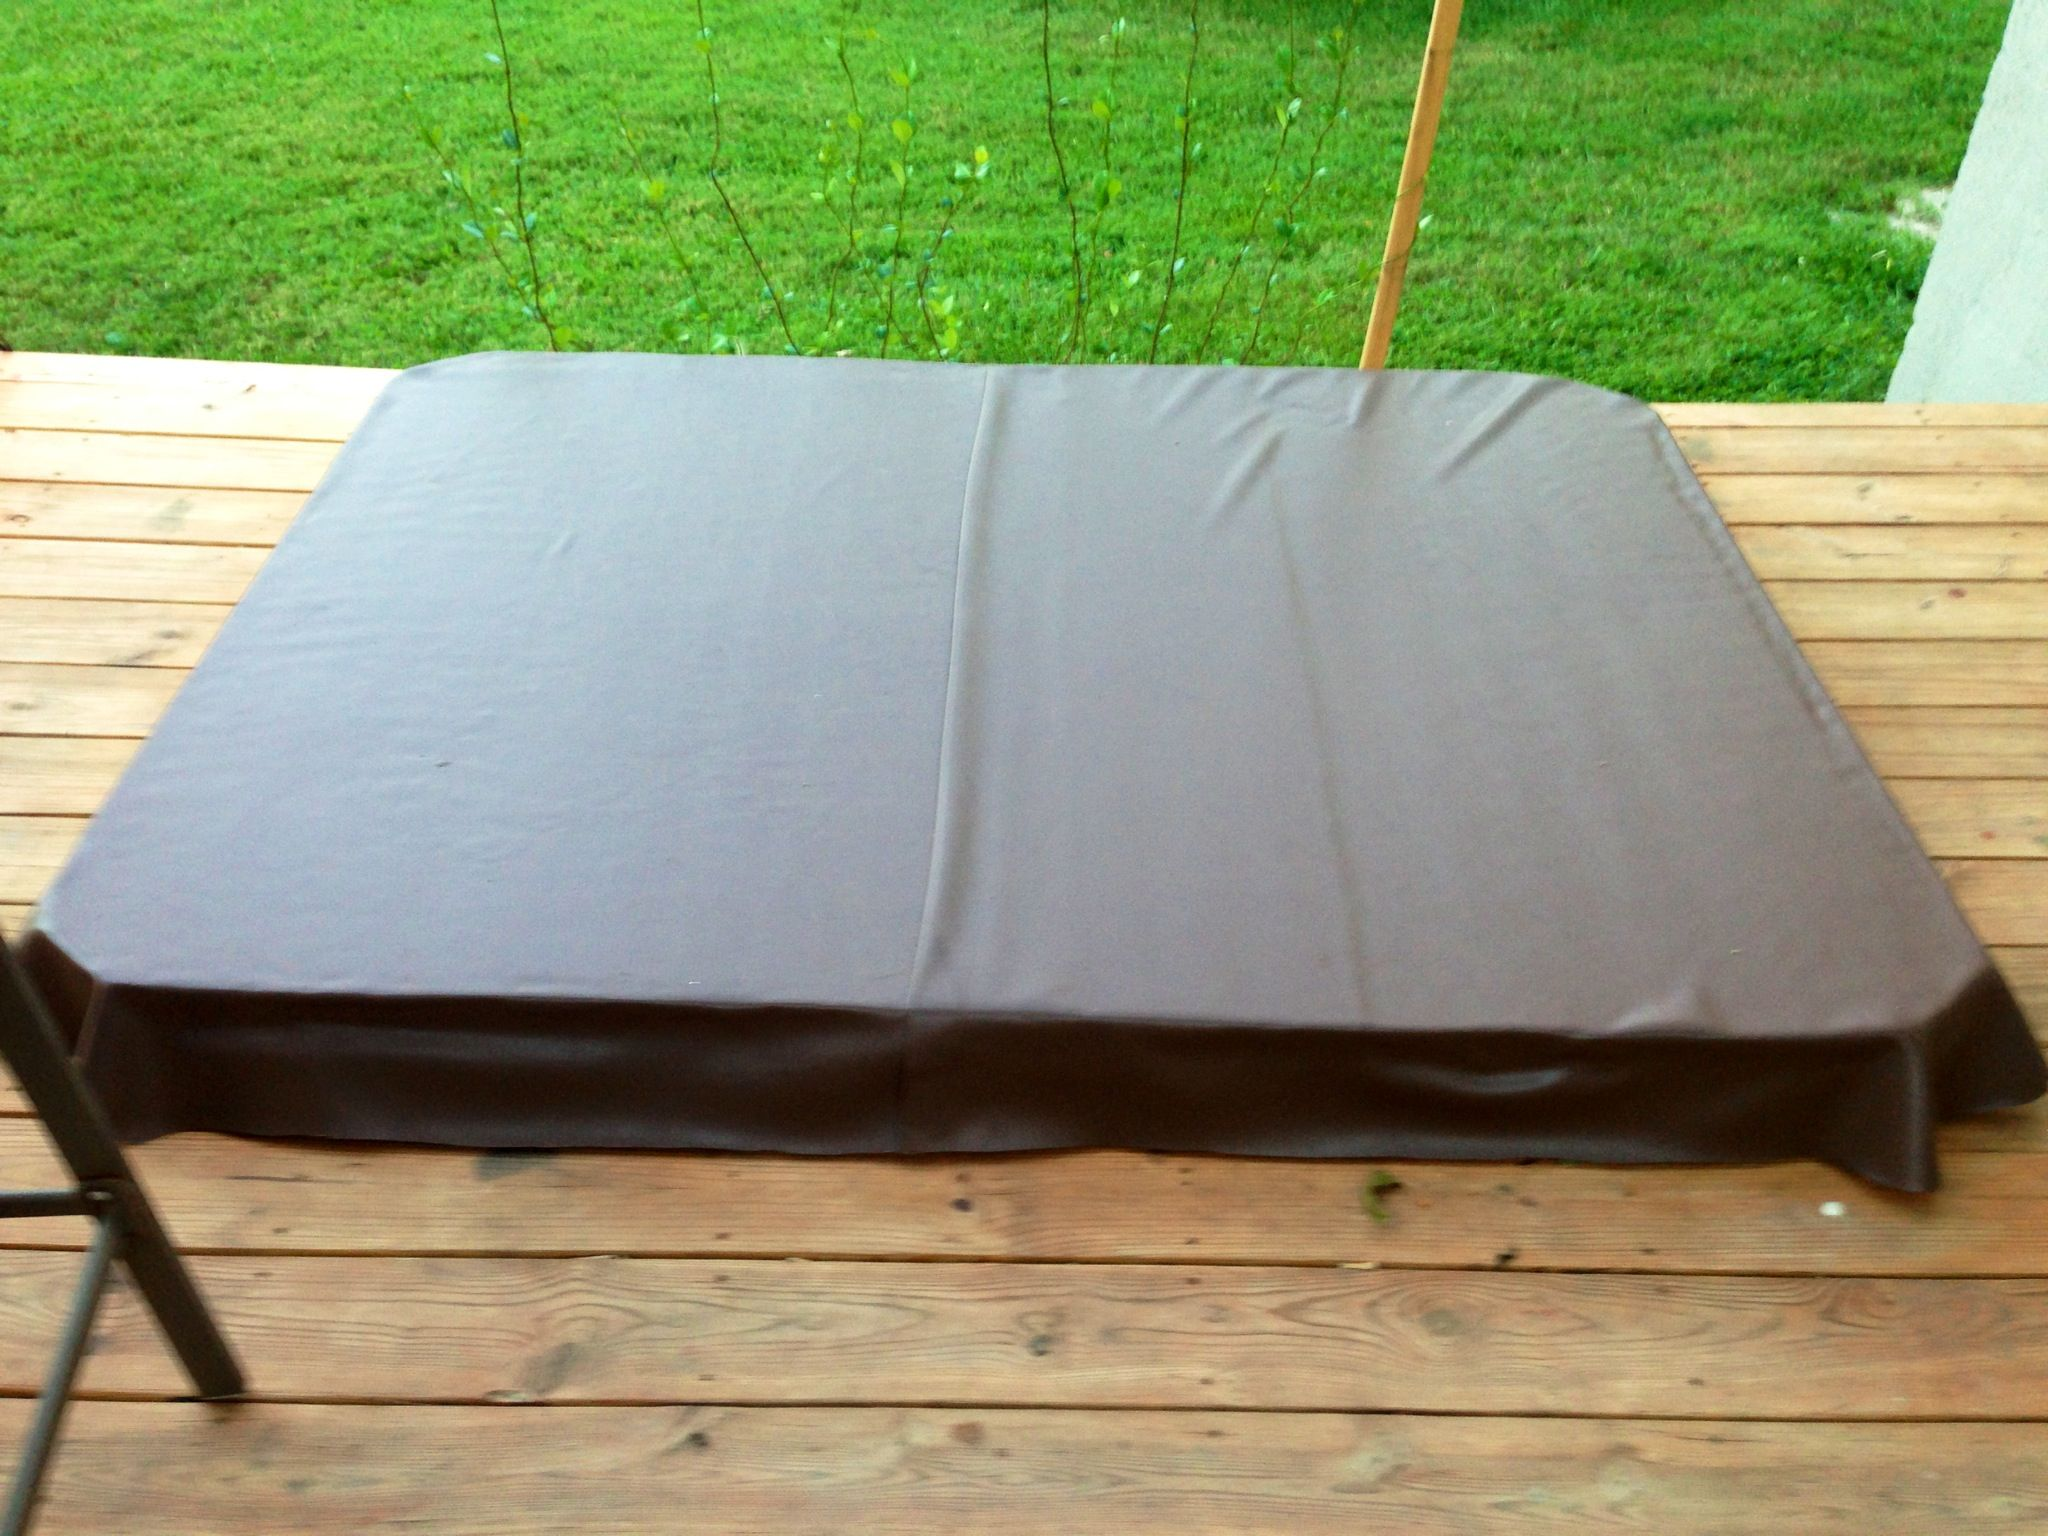 Cheap diy hot tub jacuzzi 4 - Diy Hot Tub Cover 2 Foam Insulation Wrapped In Vinyl